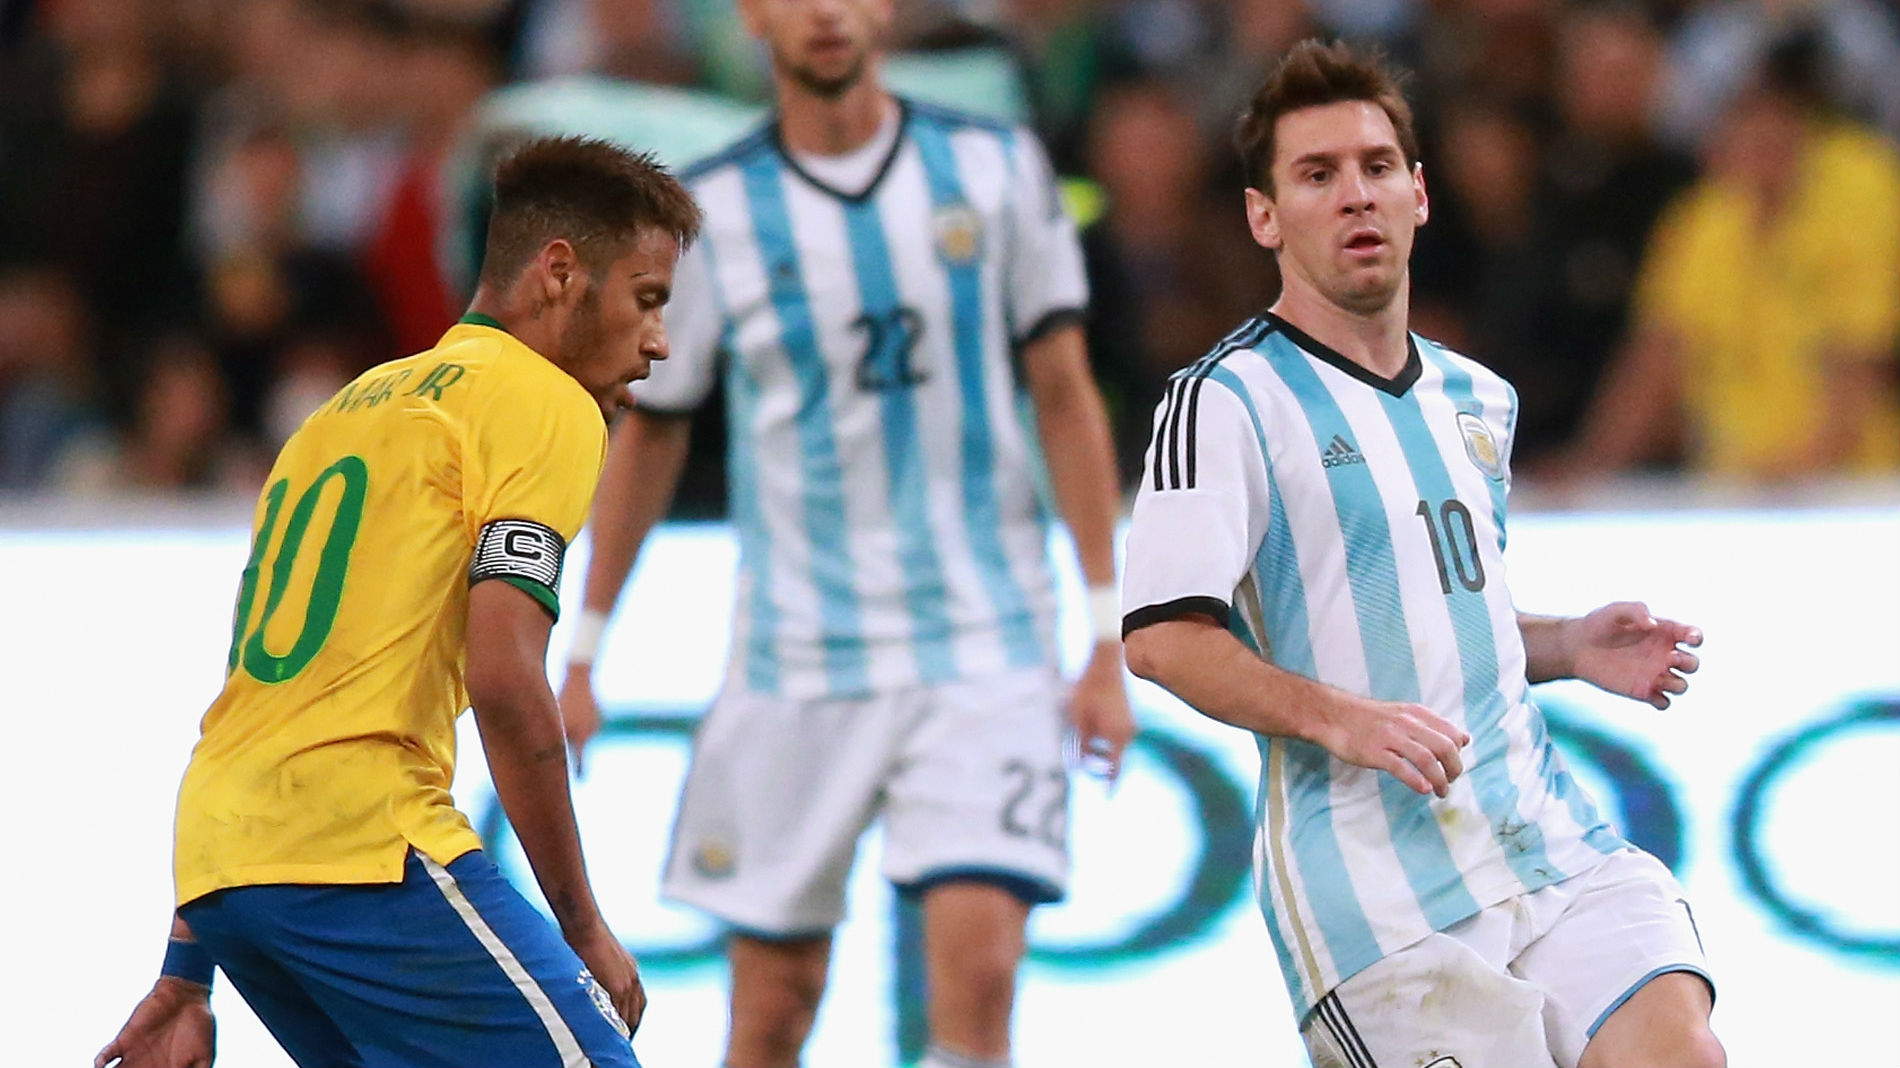 Brasil Vs Argentina: The Stars Missing Brazil-Argentina